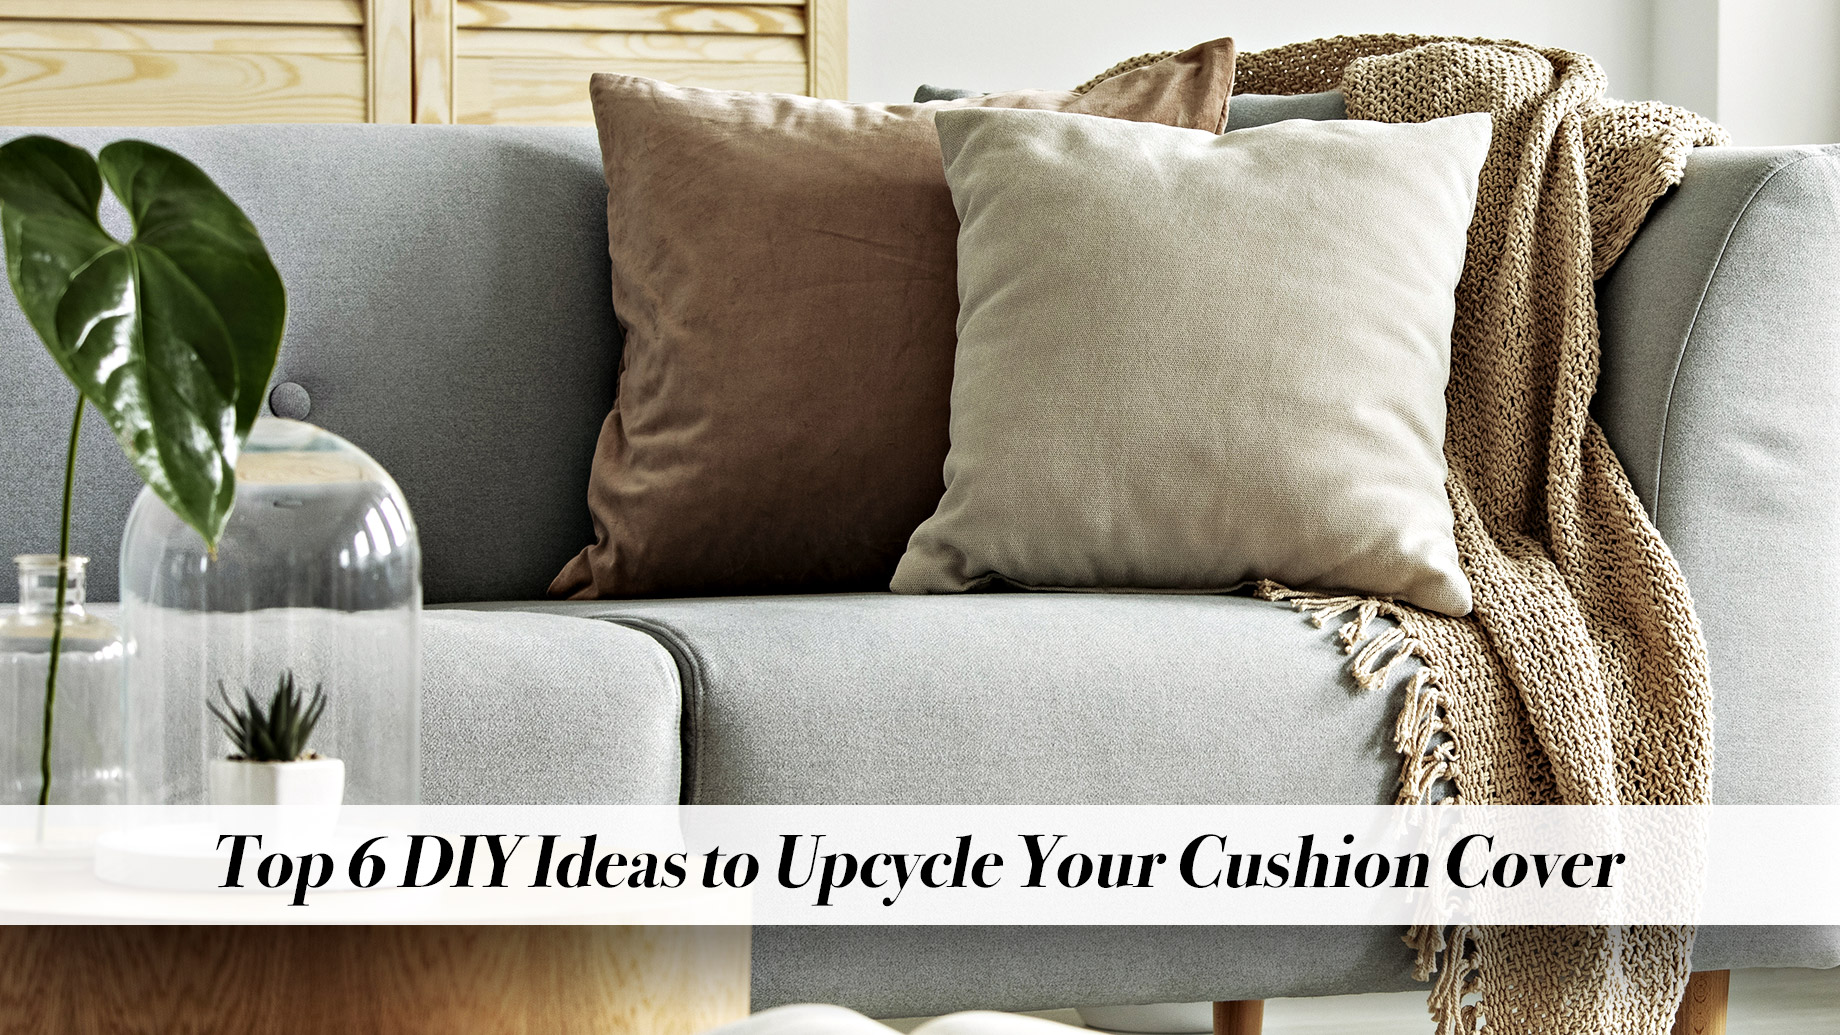 Top 6 DIY Ideas to Upcycle Your Cushion Cover